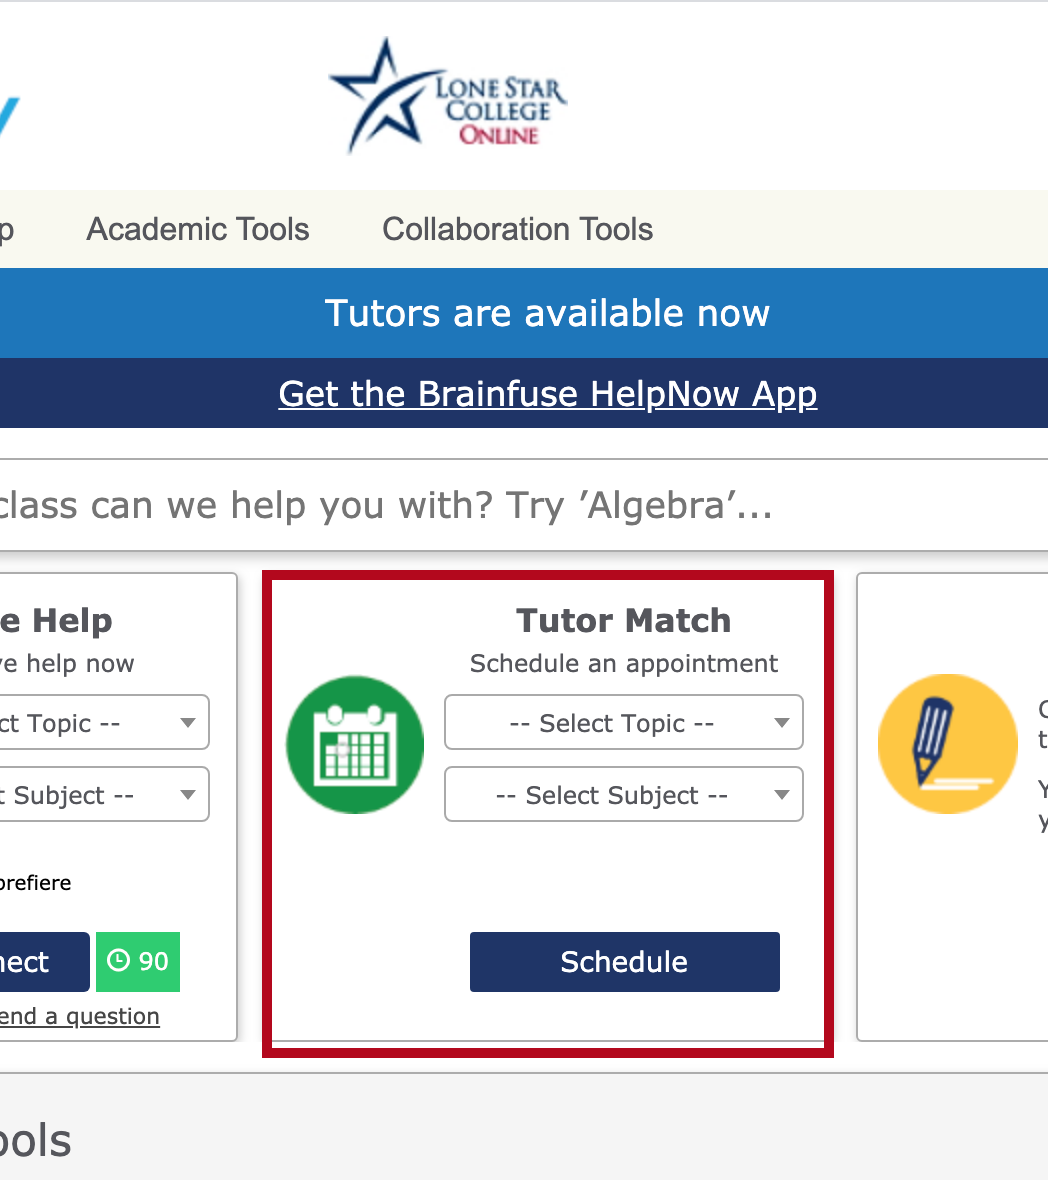 Indicates Tutor Match scheduling